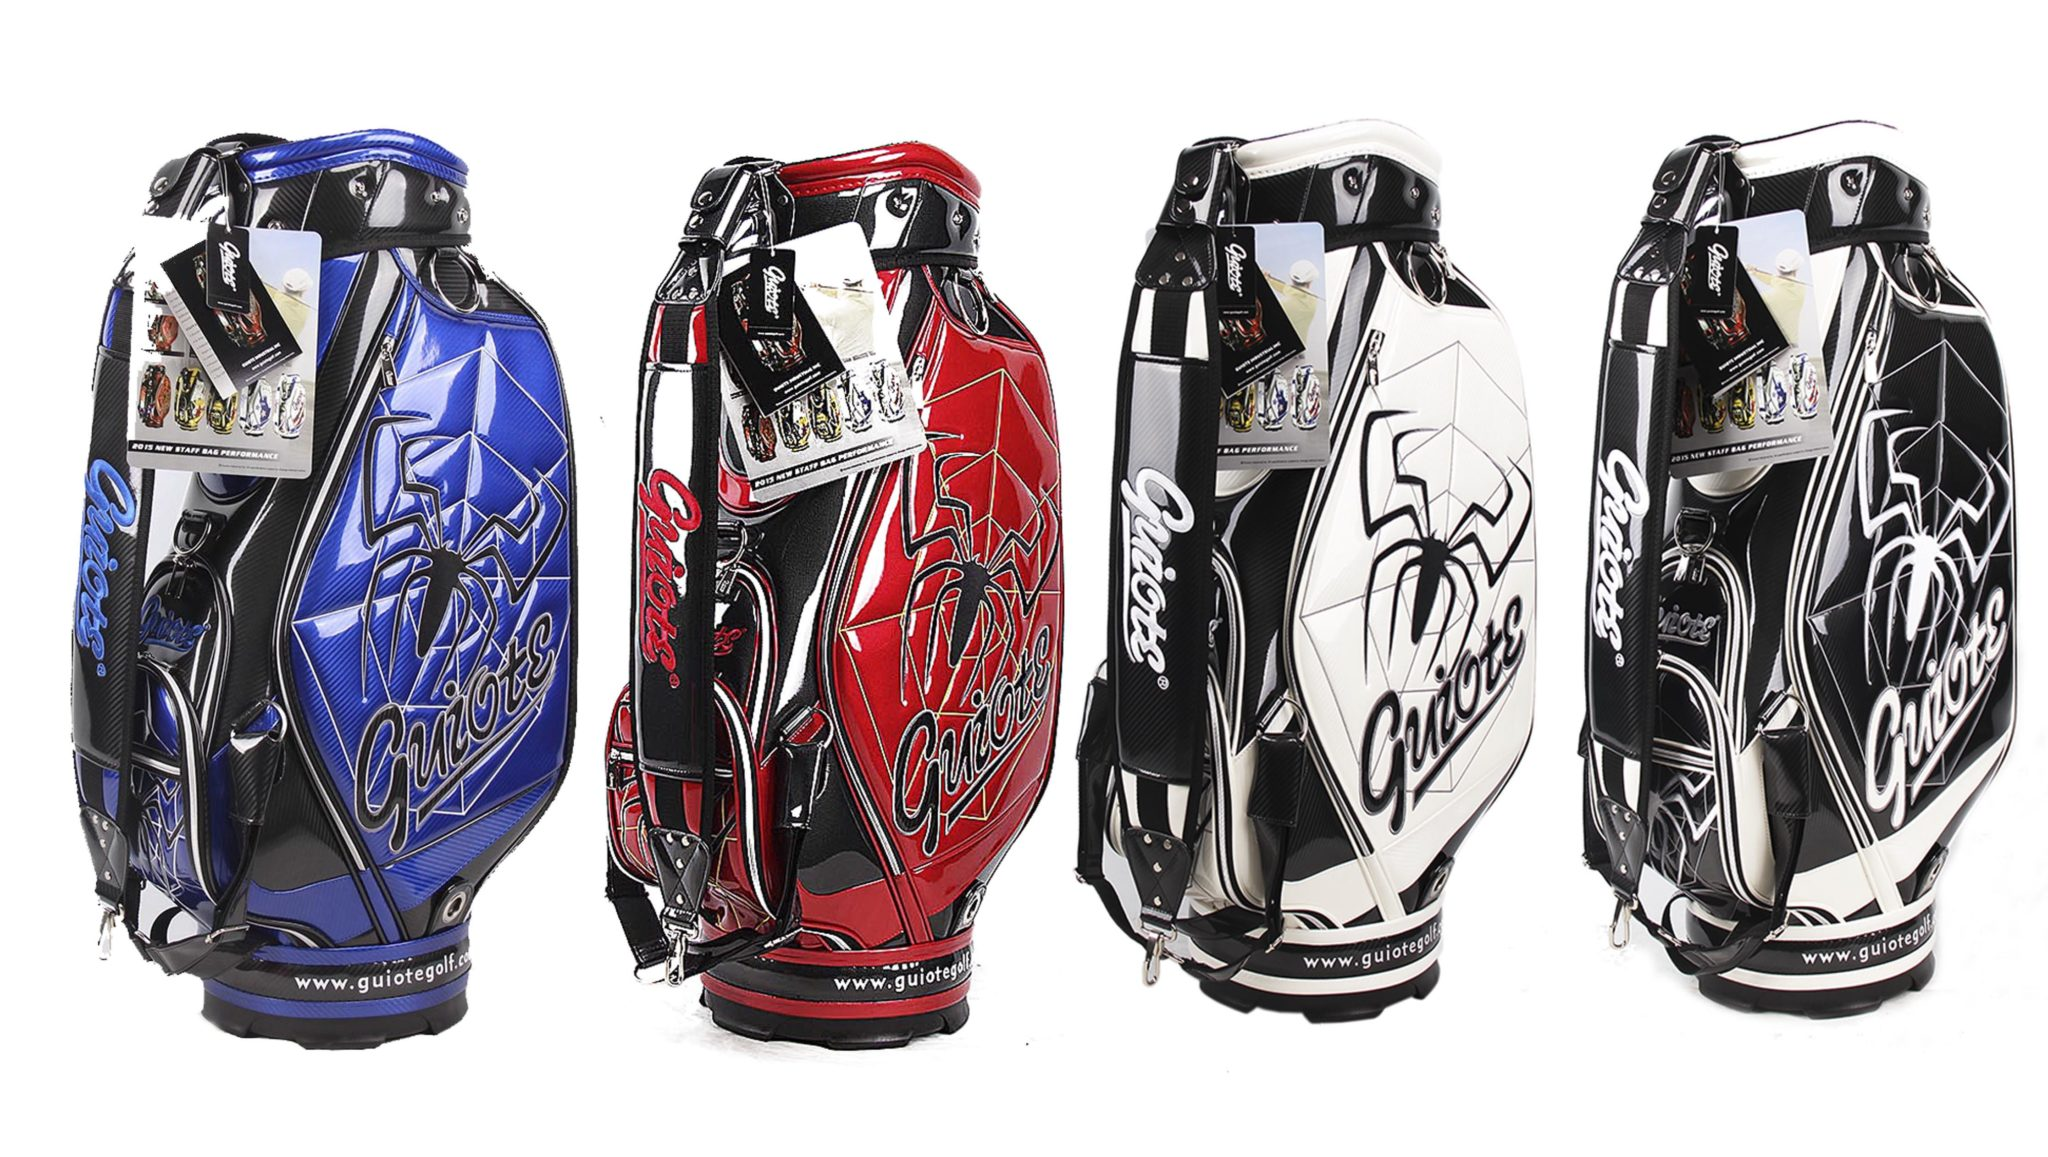 staff-bags-pro-tour-golf-club-bag-with-spider-graphic-color-choices